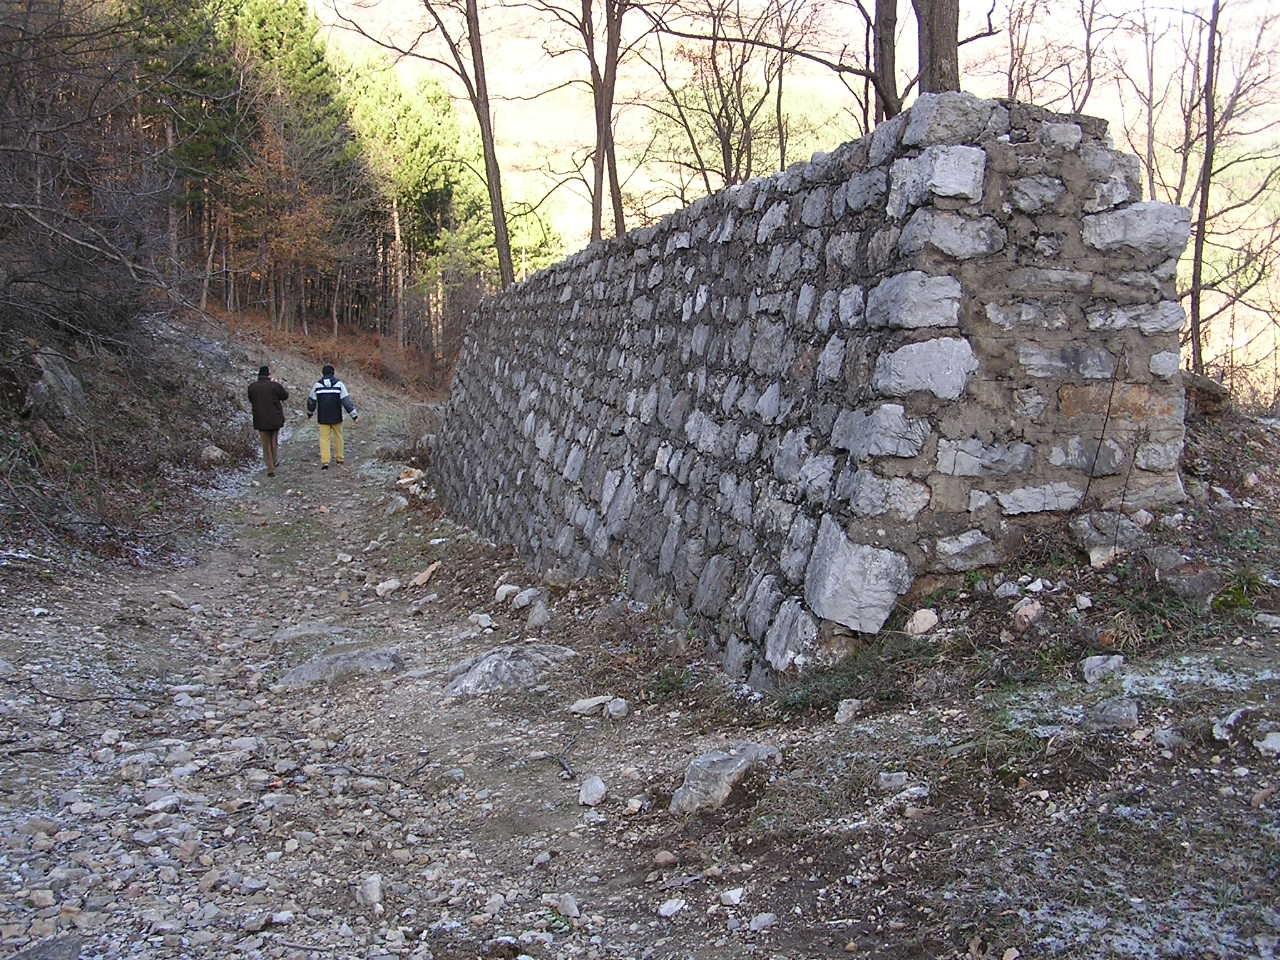 Portion of the containment wall constructed for diverting the course of the stream so that it could pass upstream of the dam. Today this stream flows once more in its original bed at the bottom of the valley.